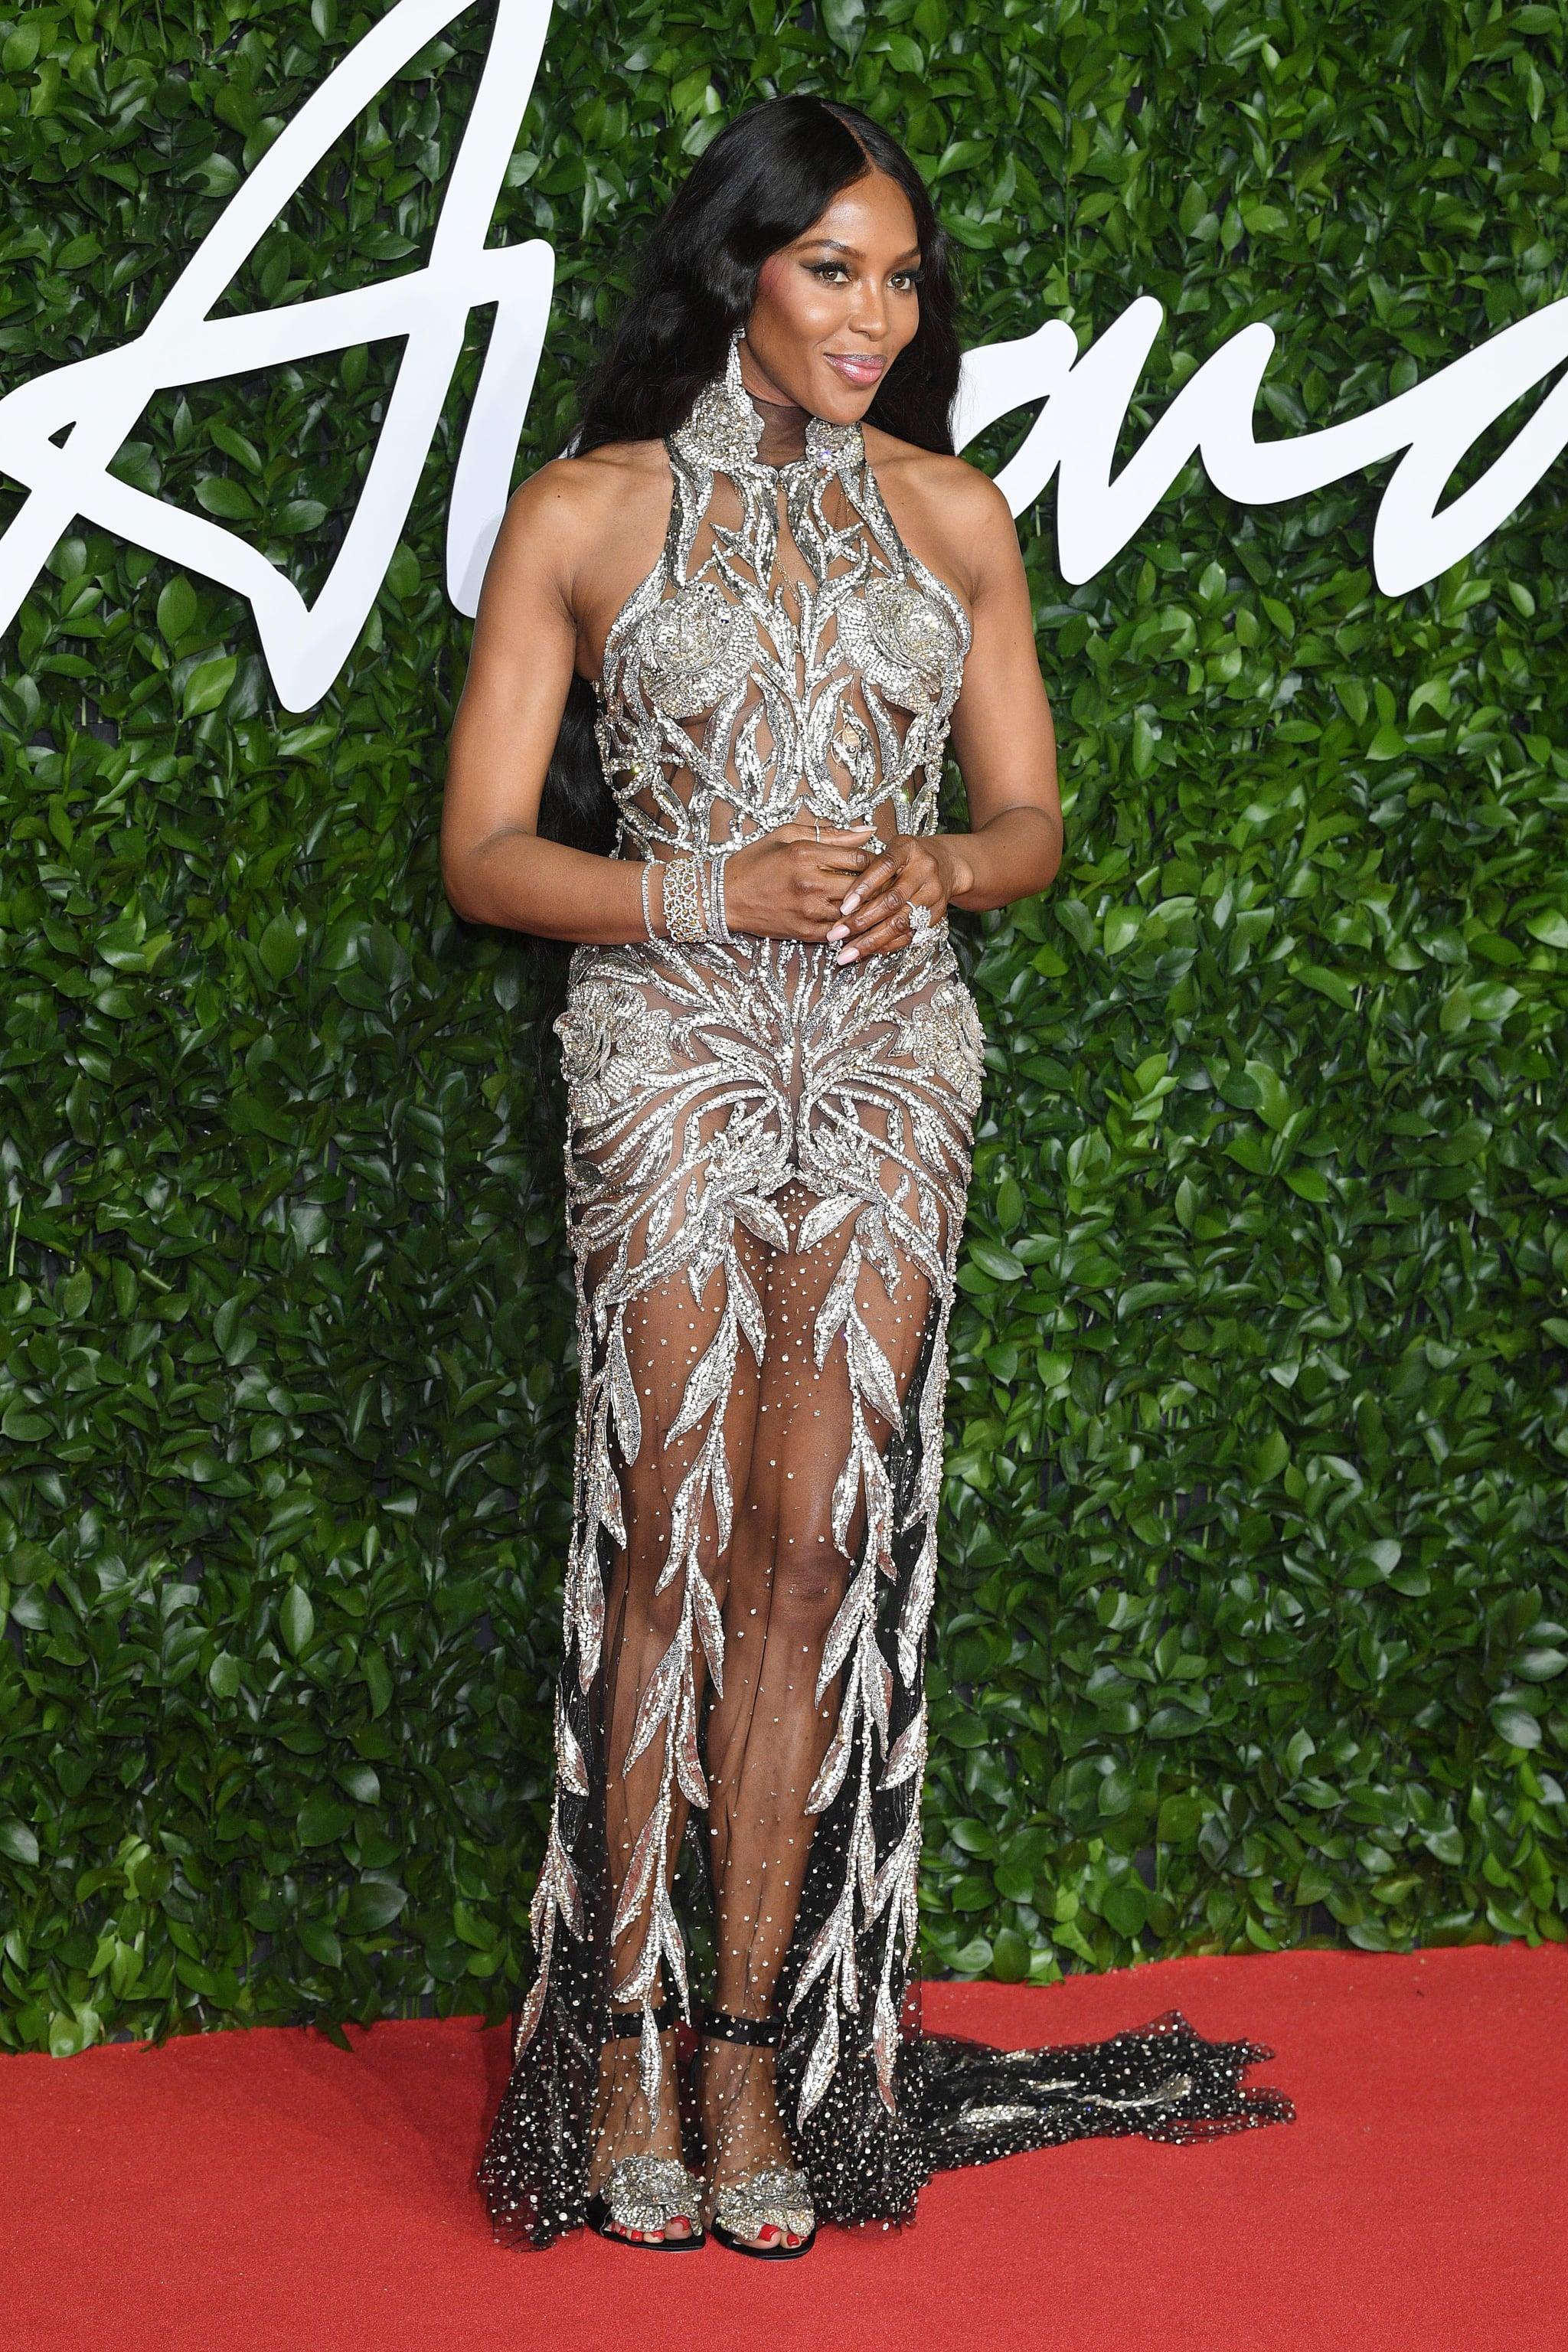 Naomi Campbell at the British Fashion Awards 2019